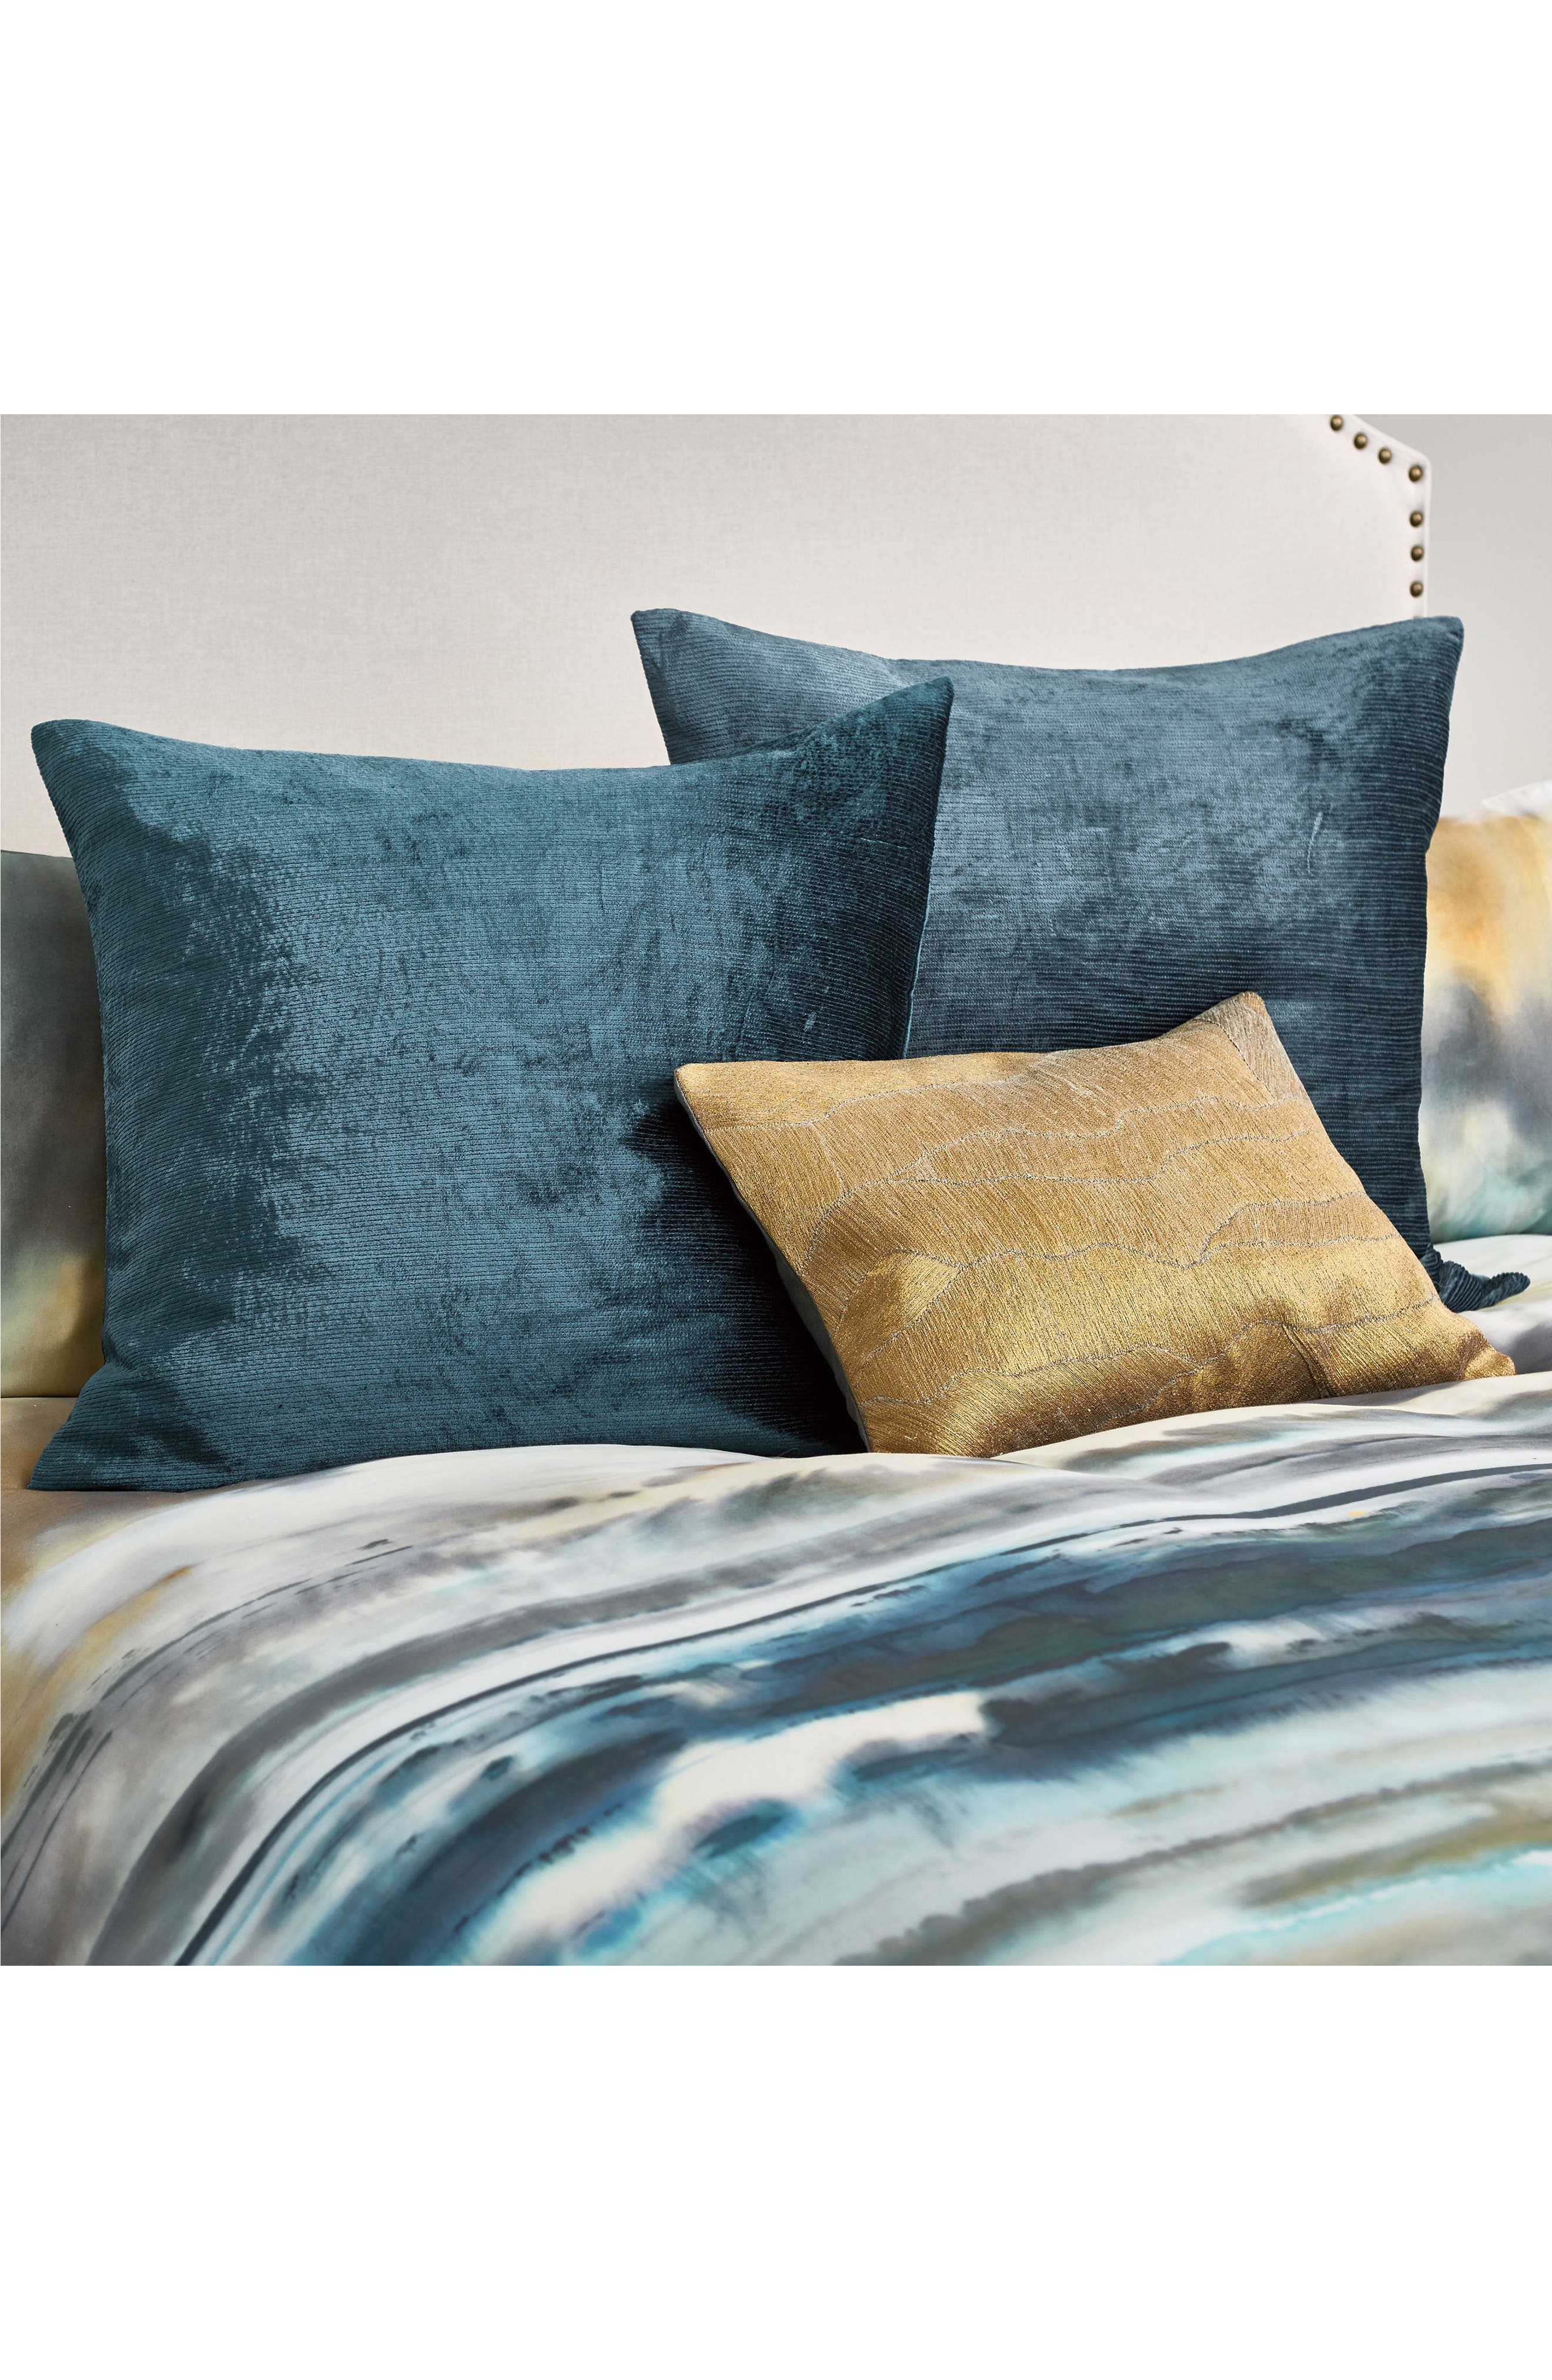 After The Storm Accent Pillow,                             Alternate thumbnail 2, color,                             Gold